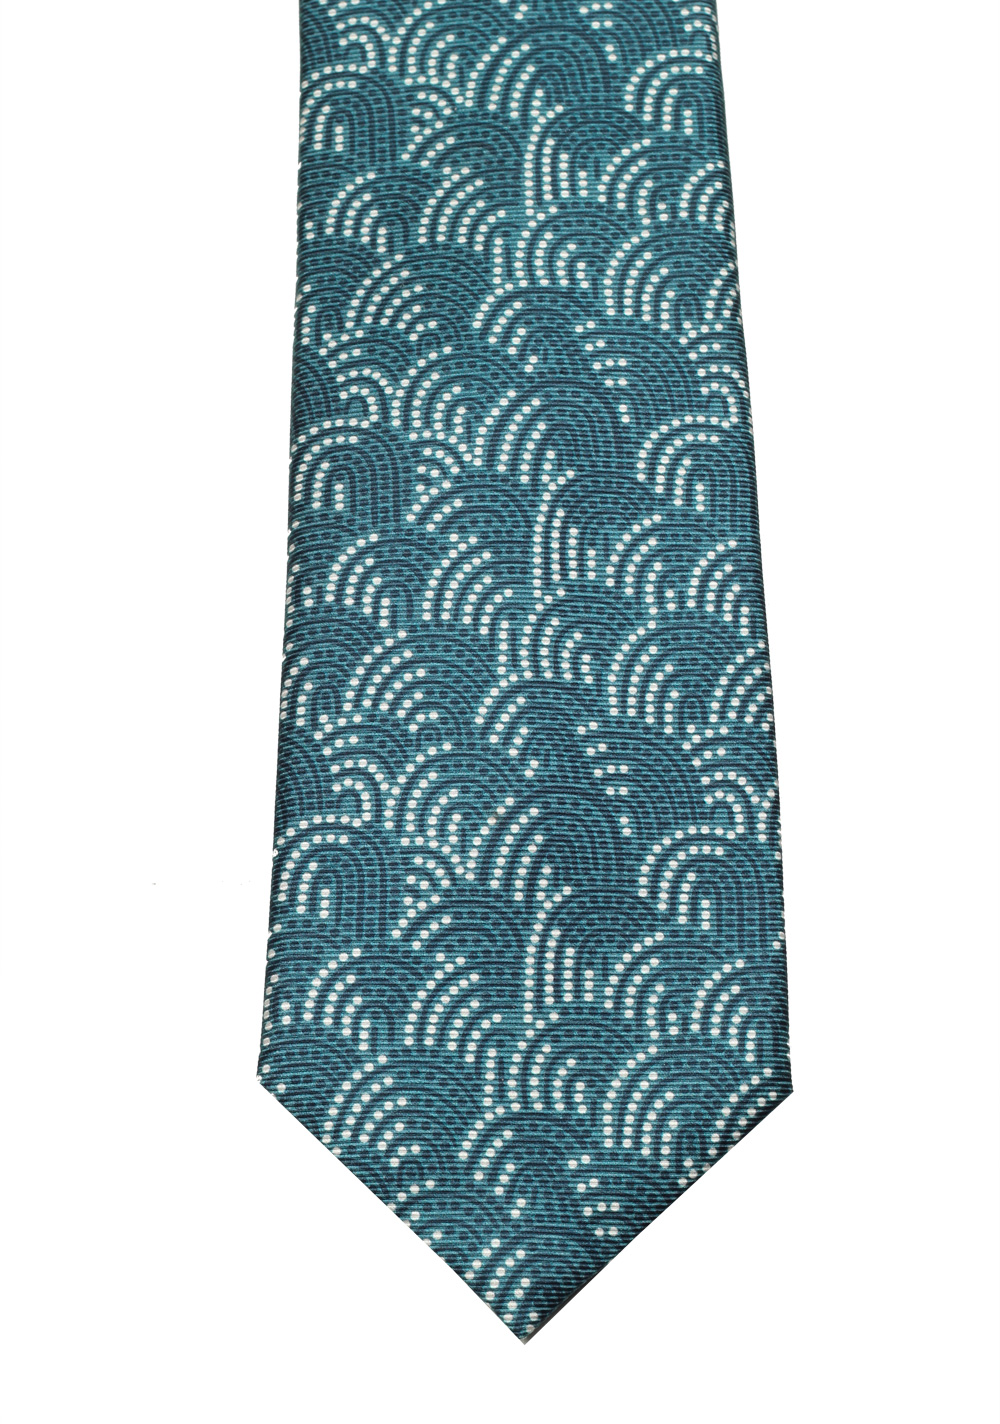 TOM FORD Patterned Green Tie In Silk | Costume Limité